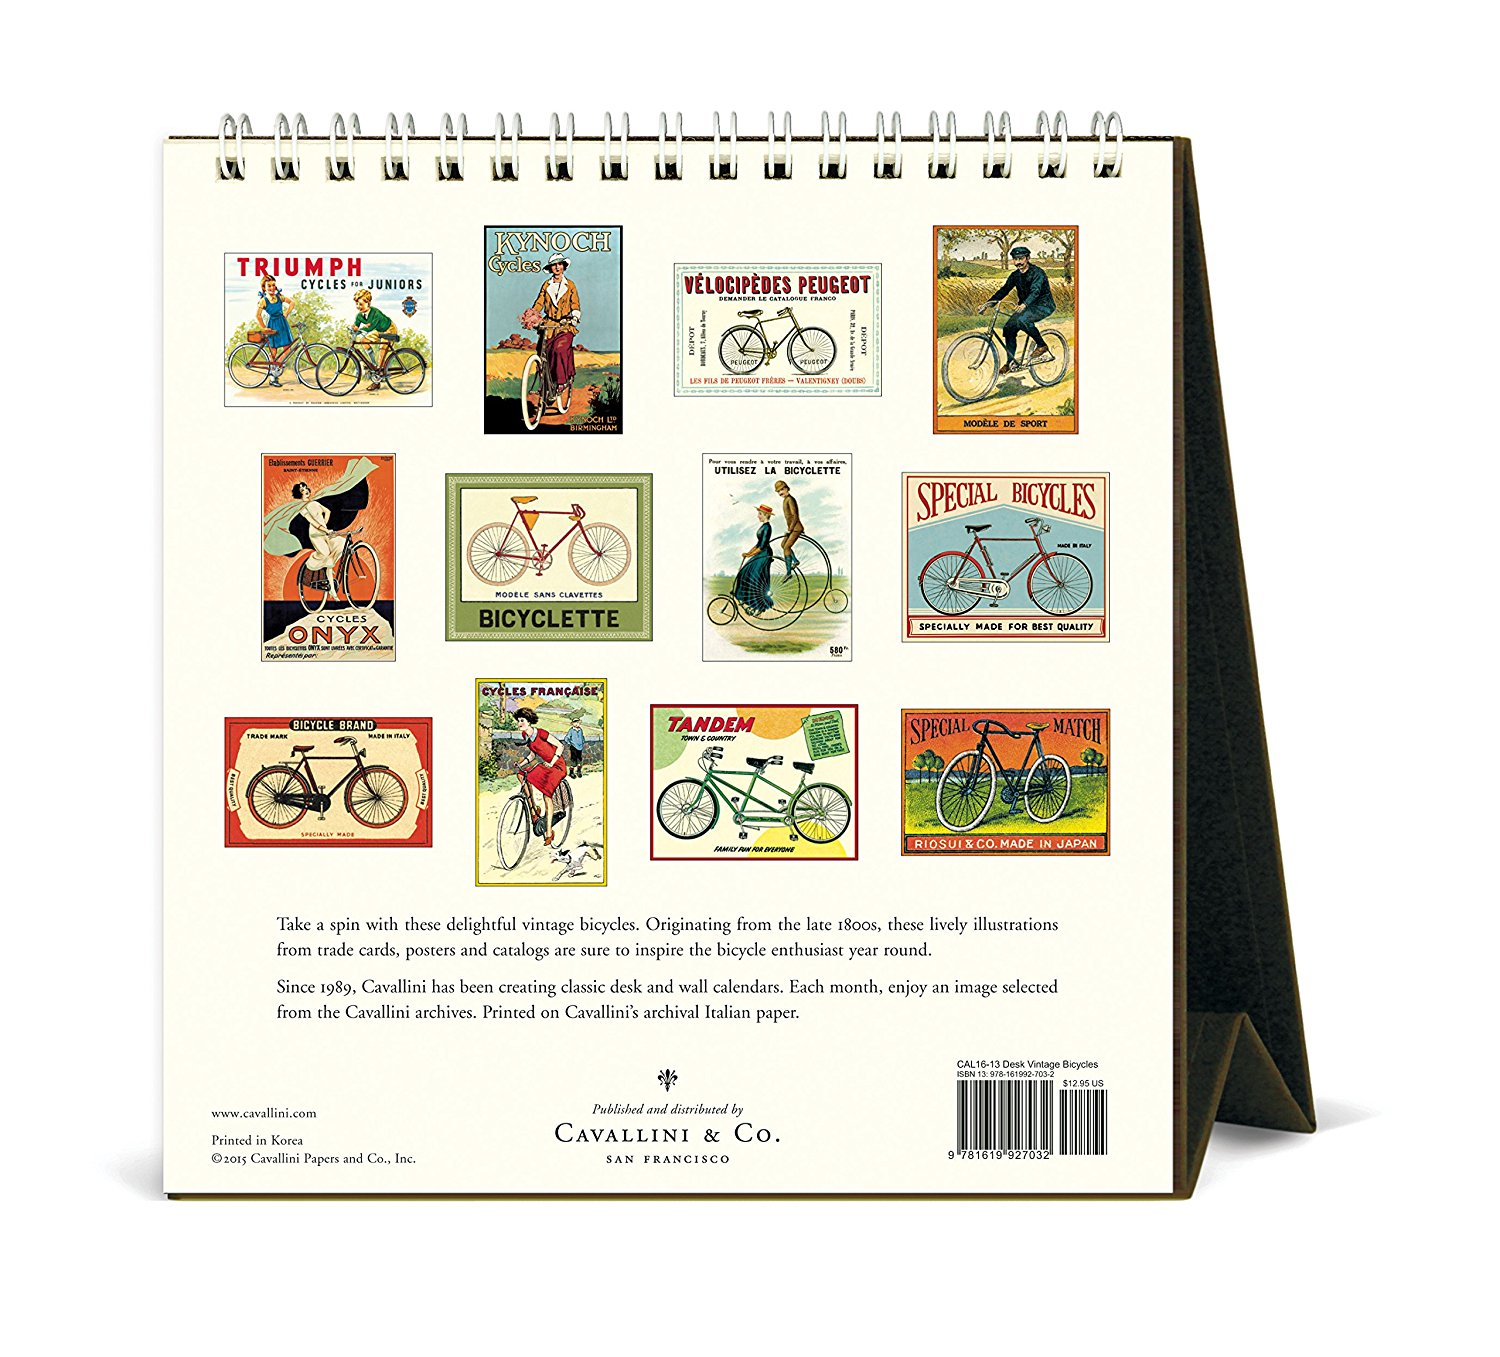 Cavallini Papers & Co CAL16-13 2016 Vintage Bicycles Desk Calendar